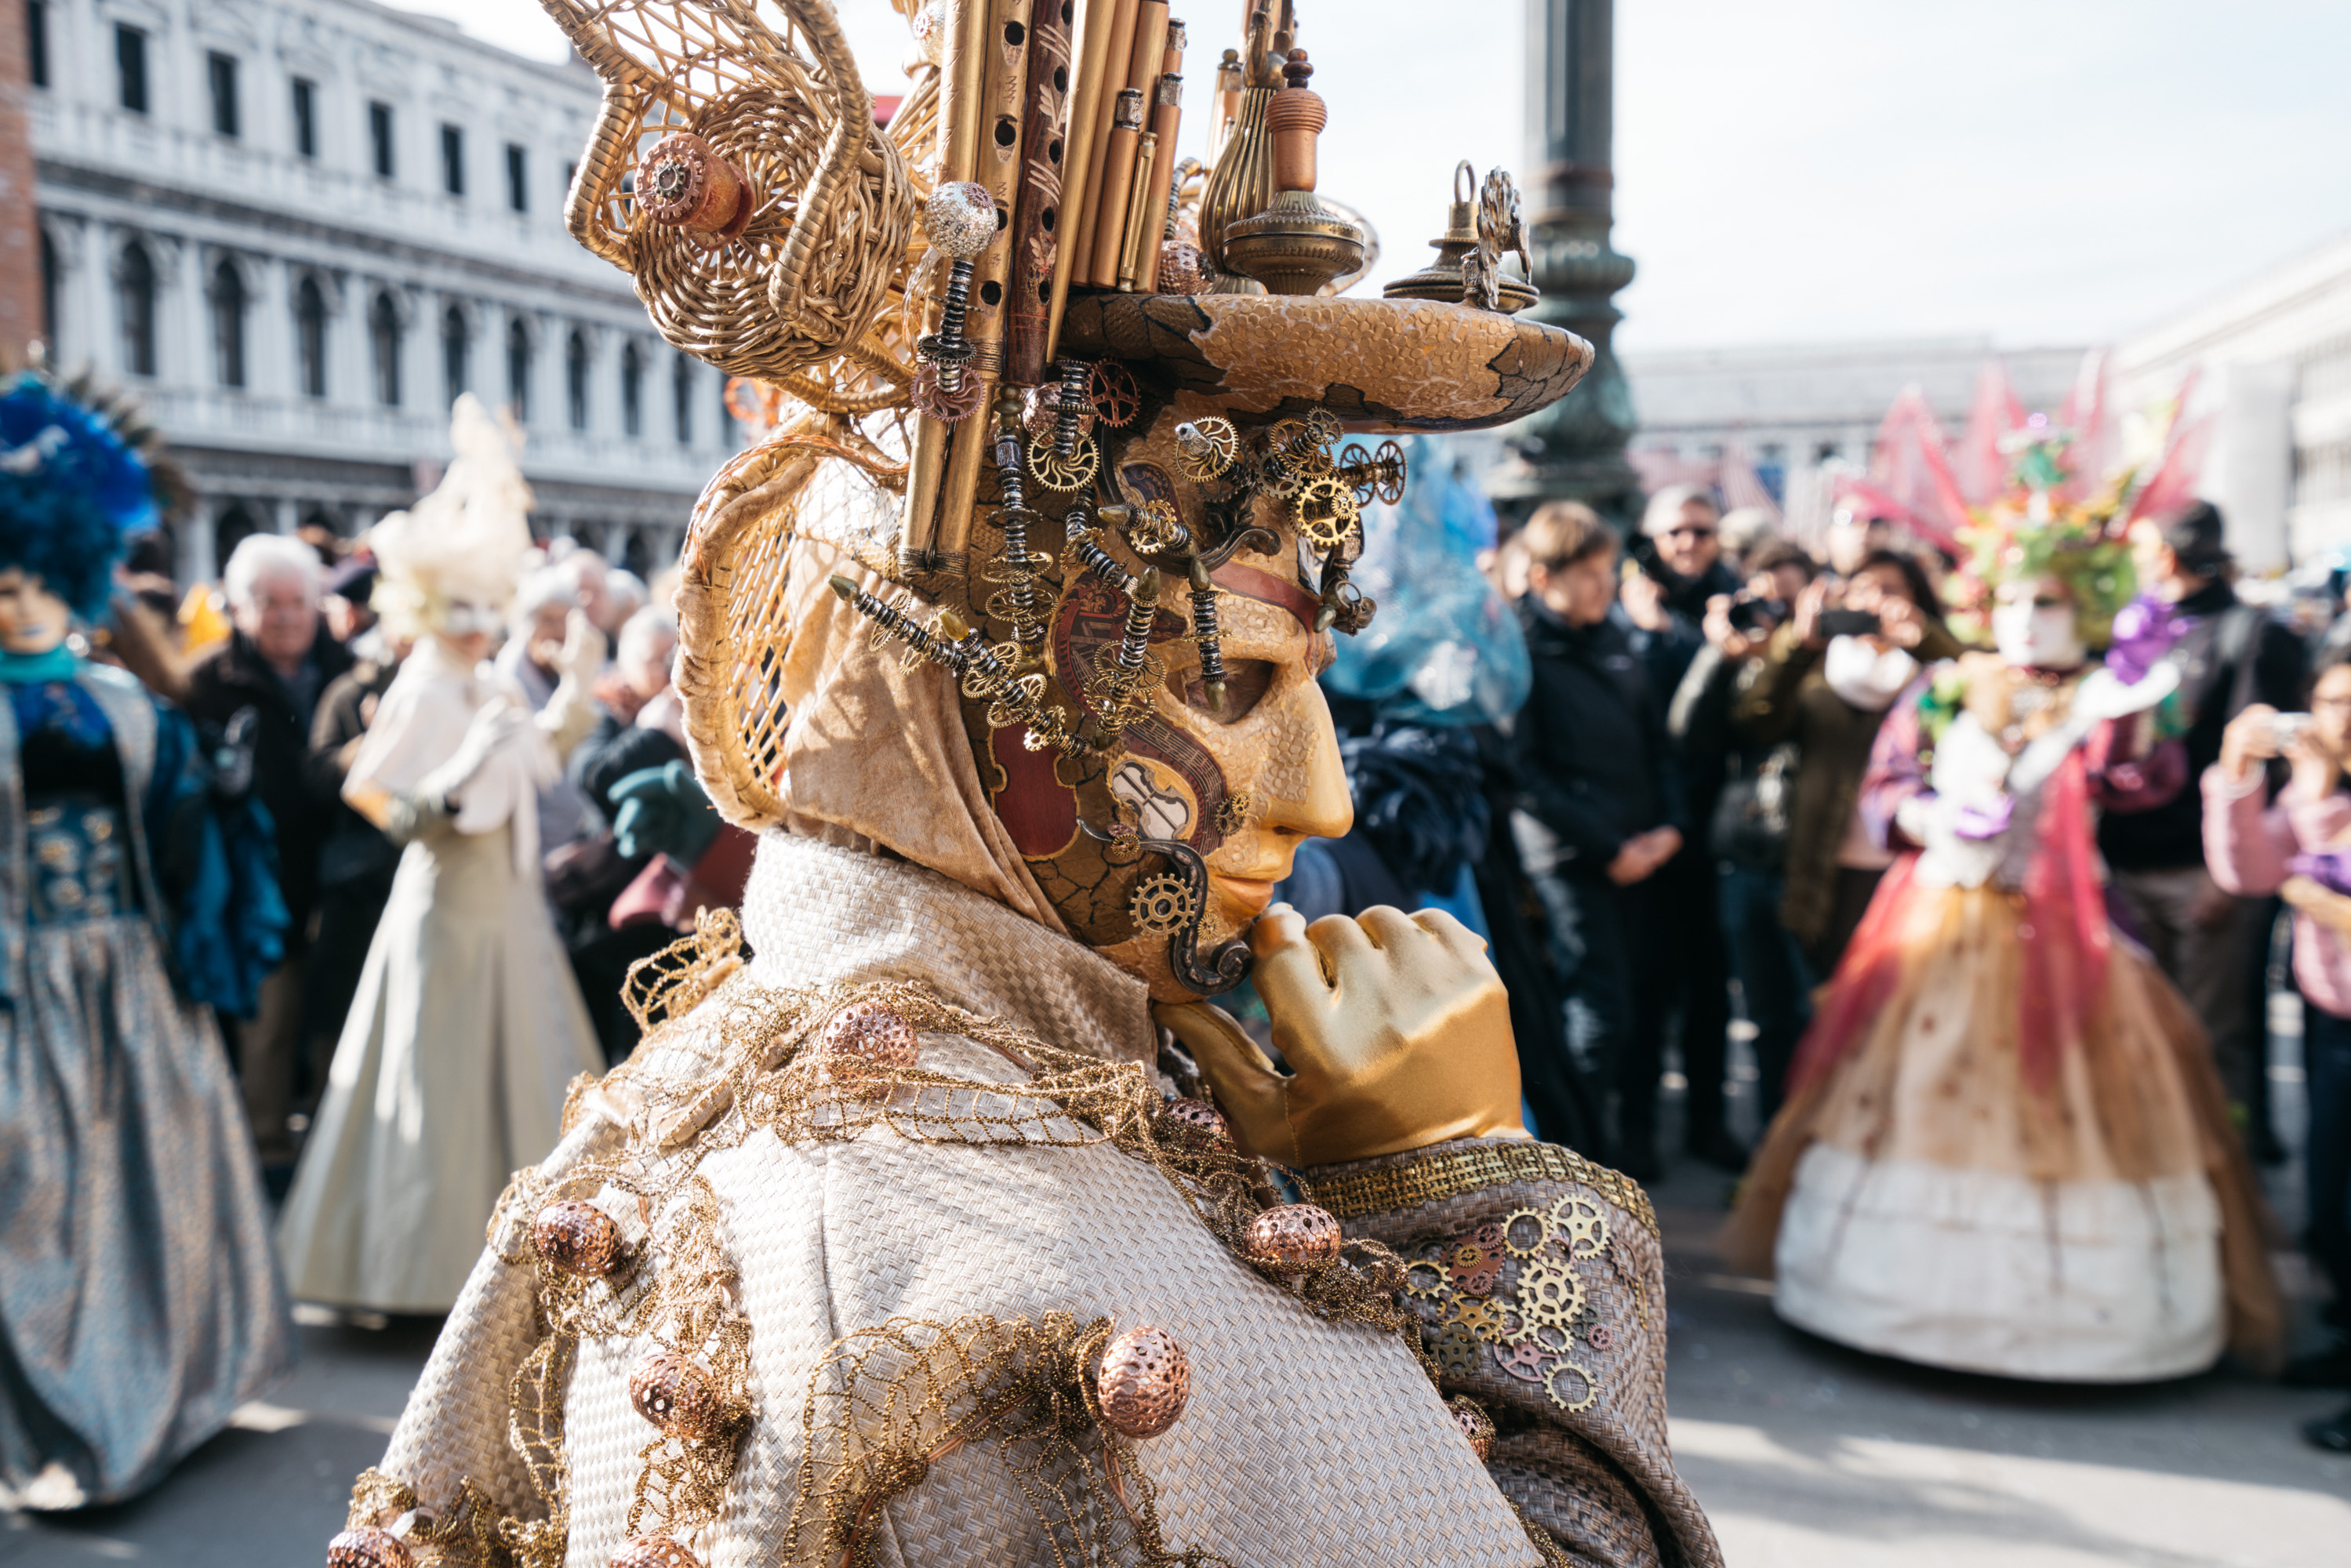 Mask Carnaval in Venice [David Tan]